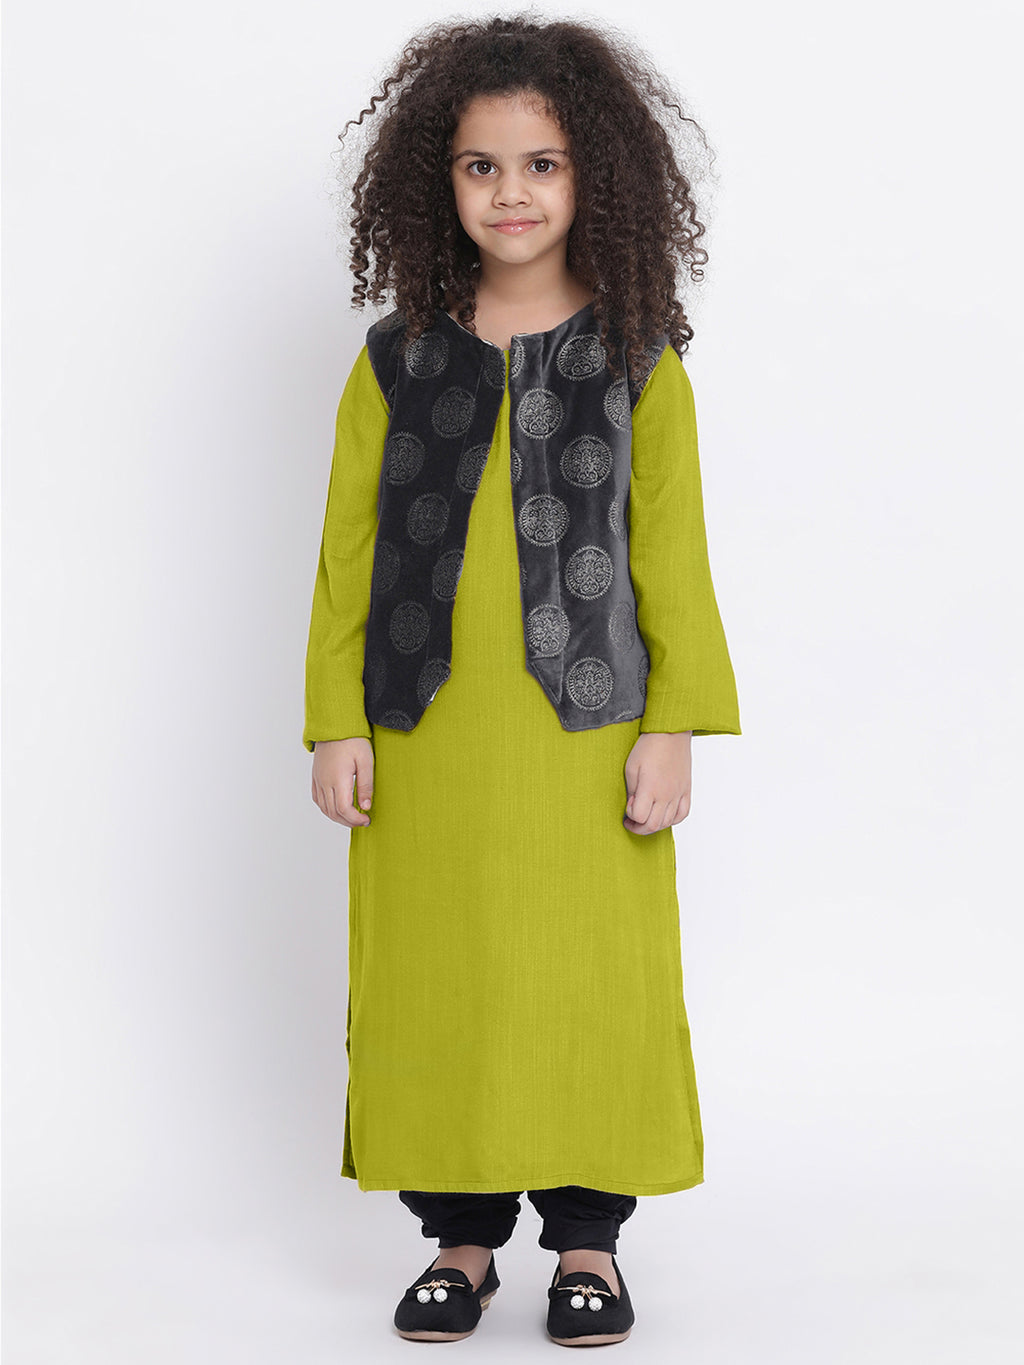 URVI Apple Green Kurta pajama with shrug for Girls